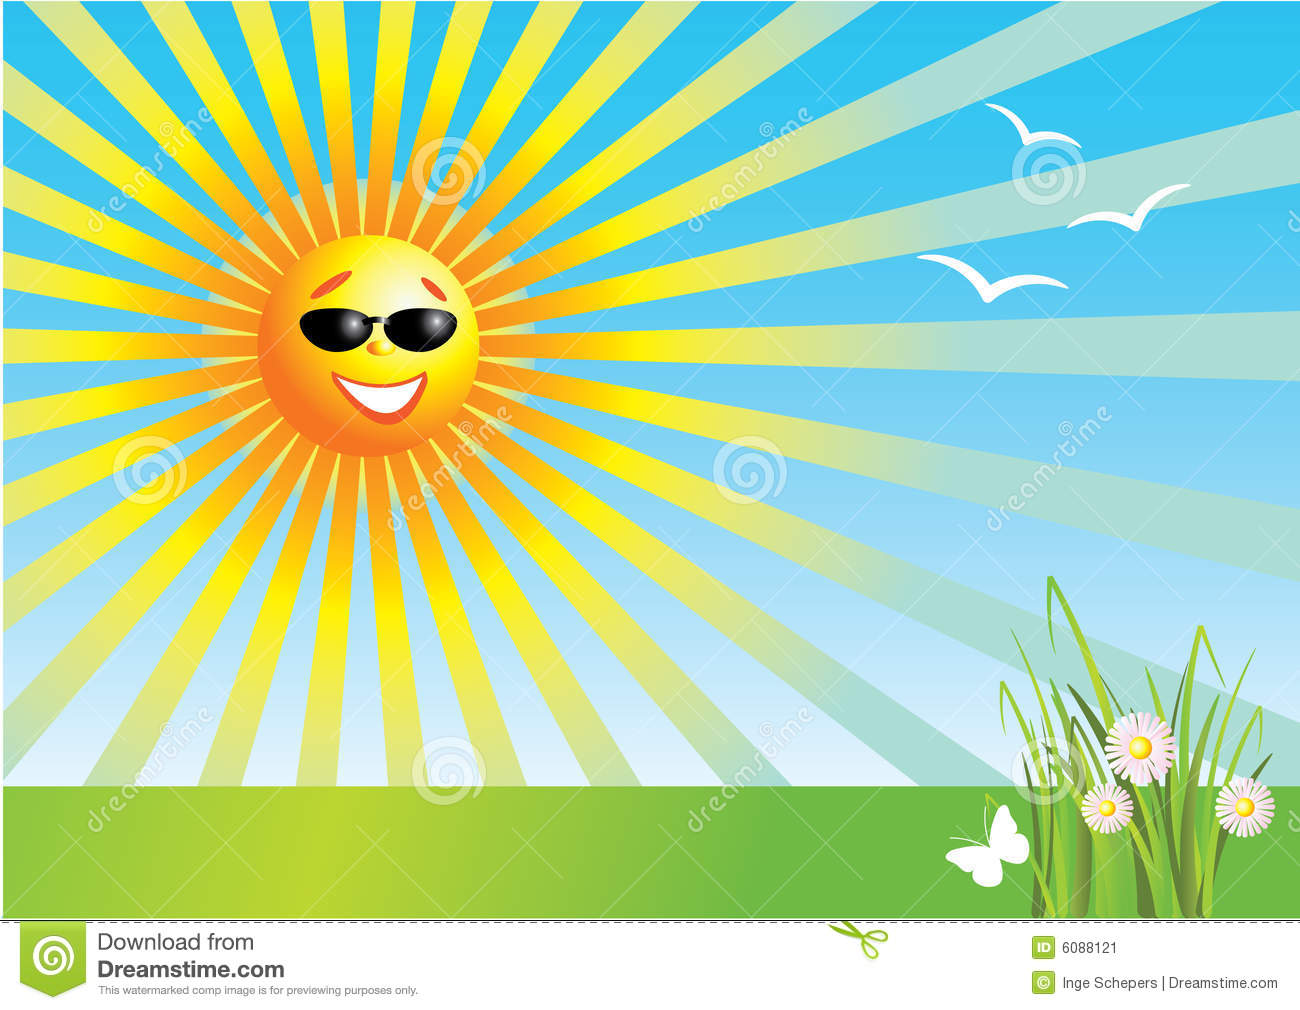 Vector illustration of the sun on a bright sunny day, with some birds